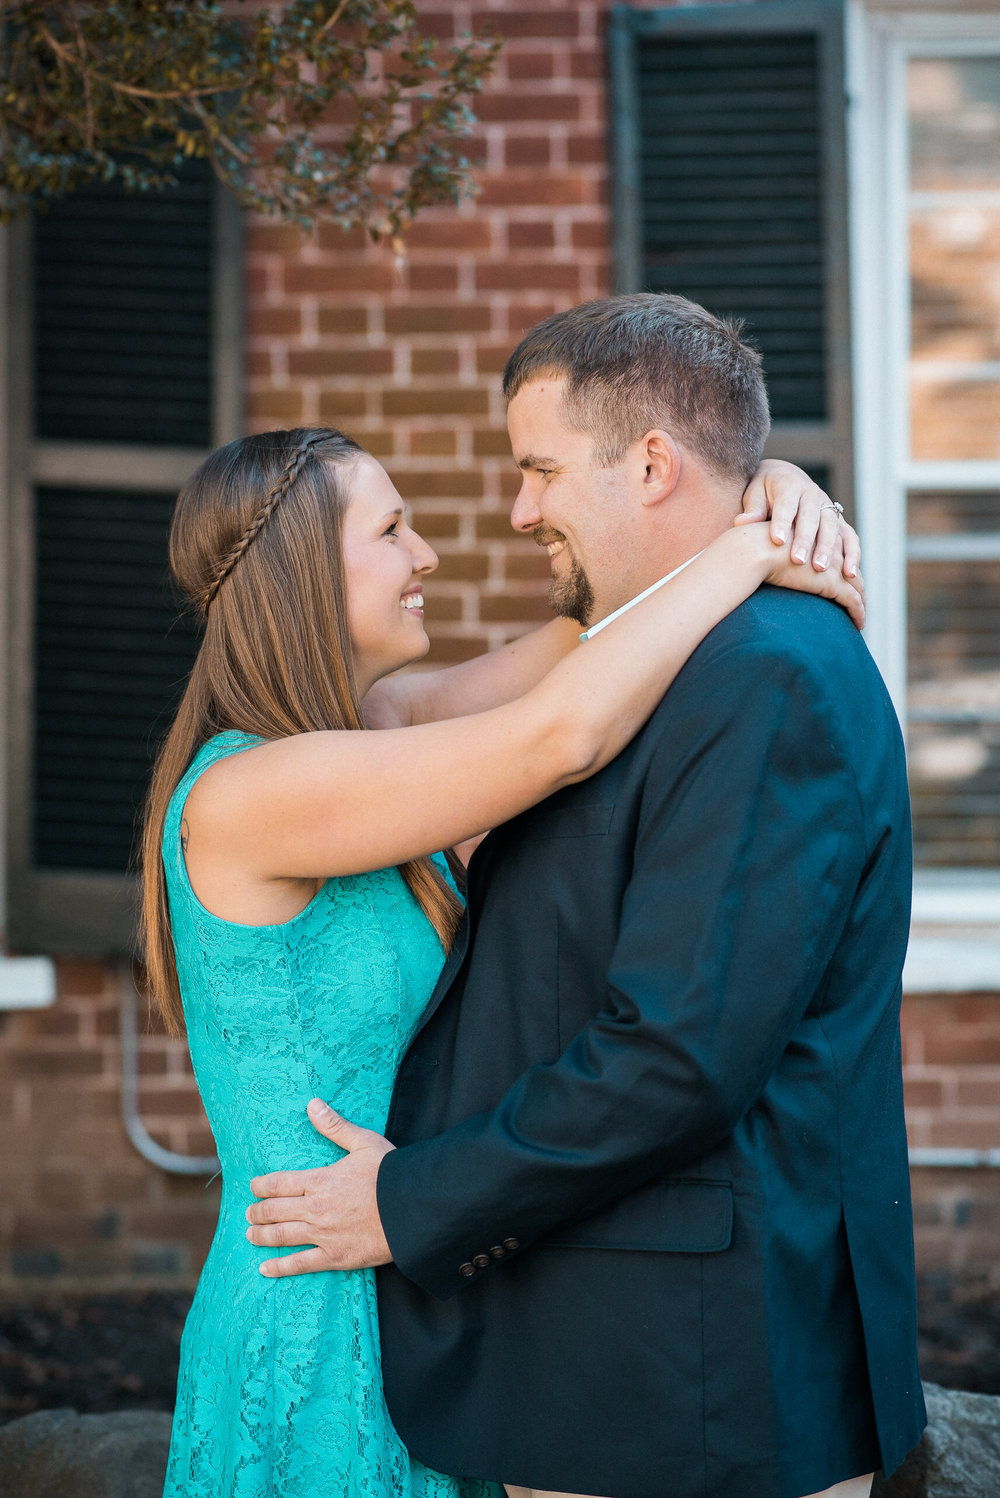 Couple hugging in front of brick wall